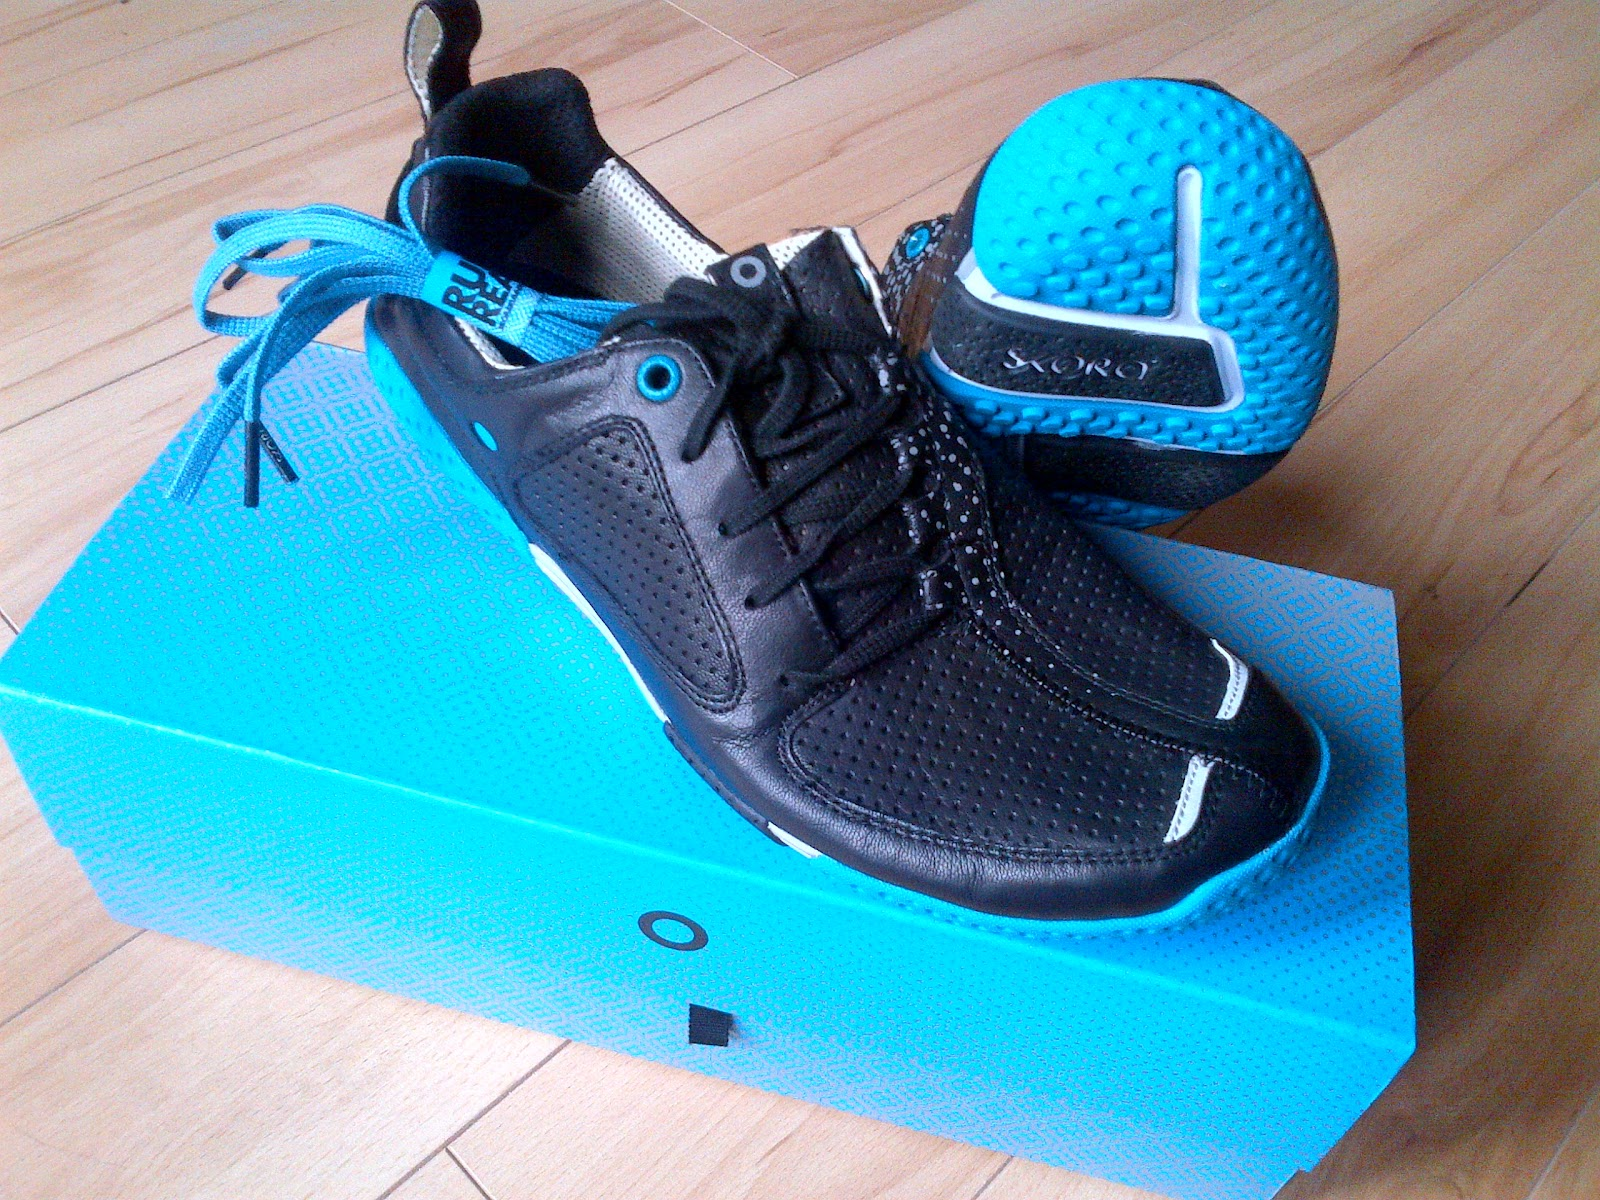 9run - a blog on running and the active lifestyle: Shoe Review ...